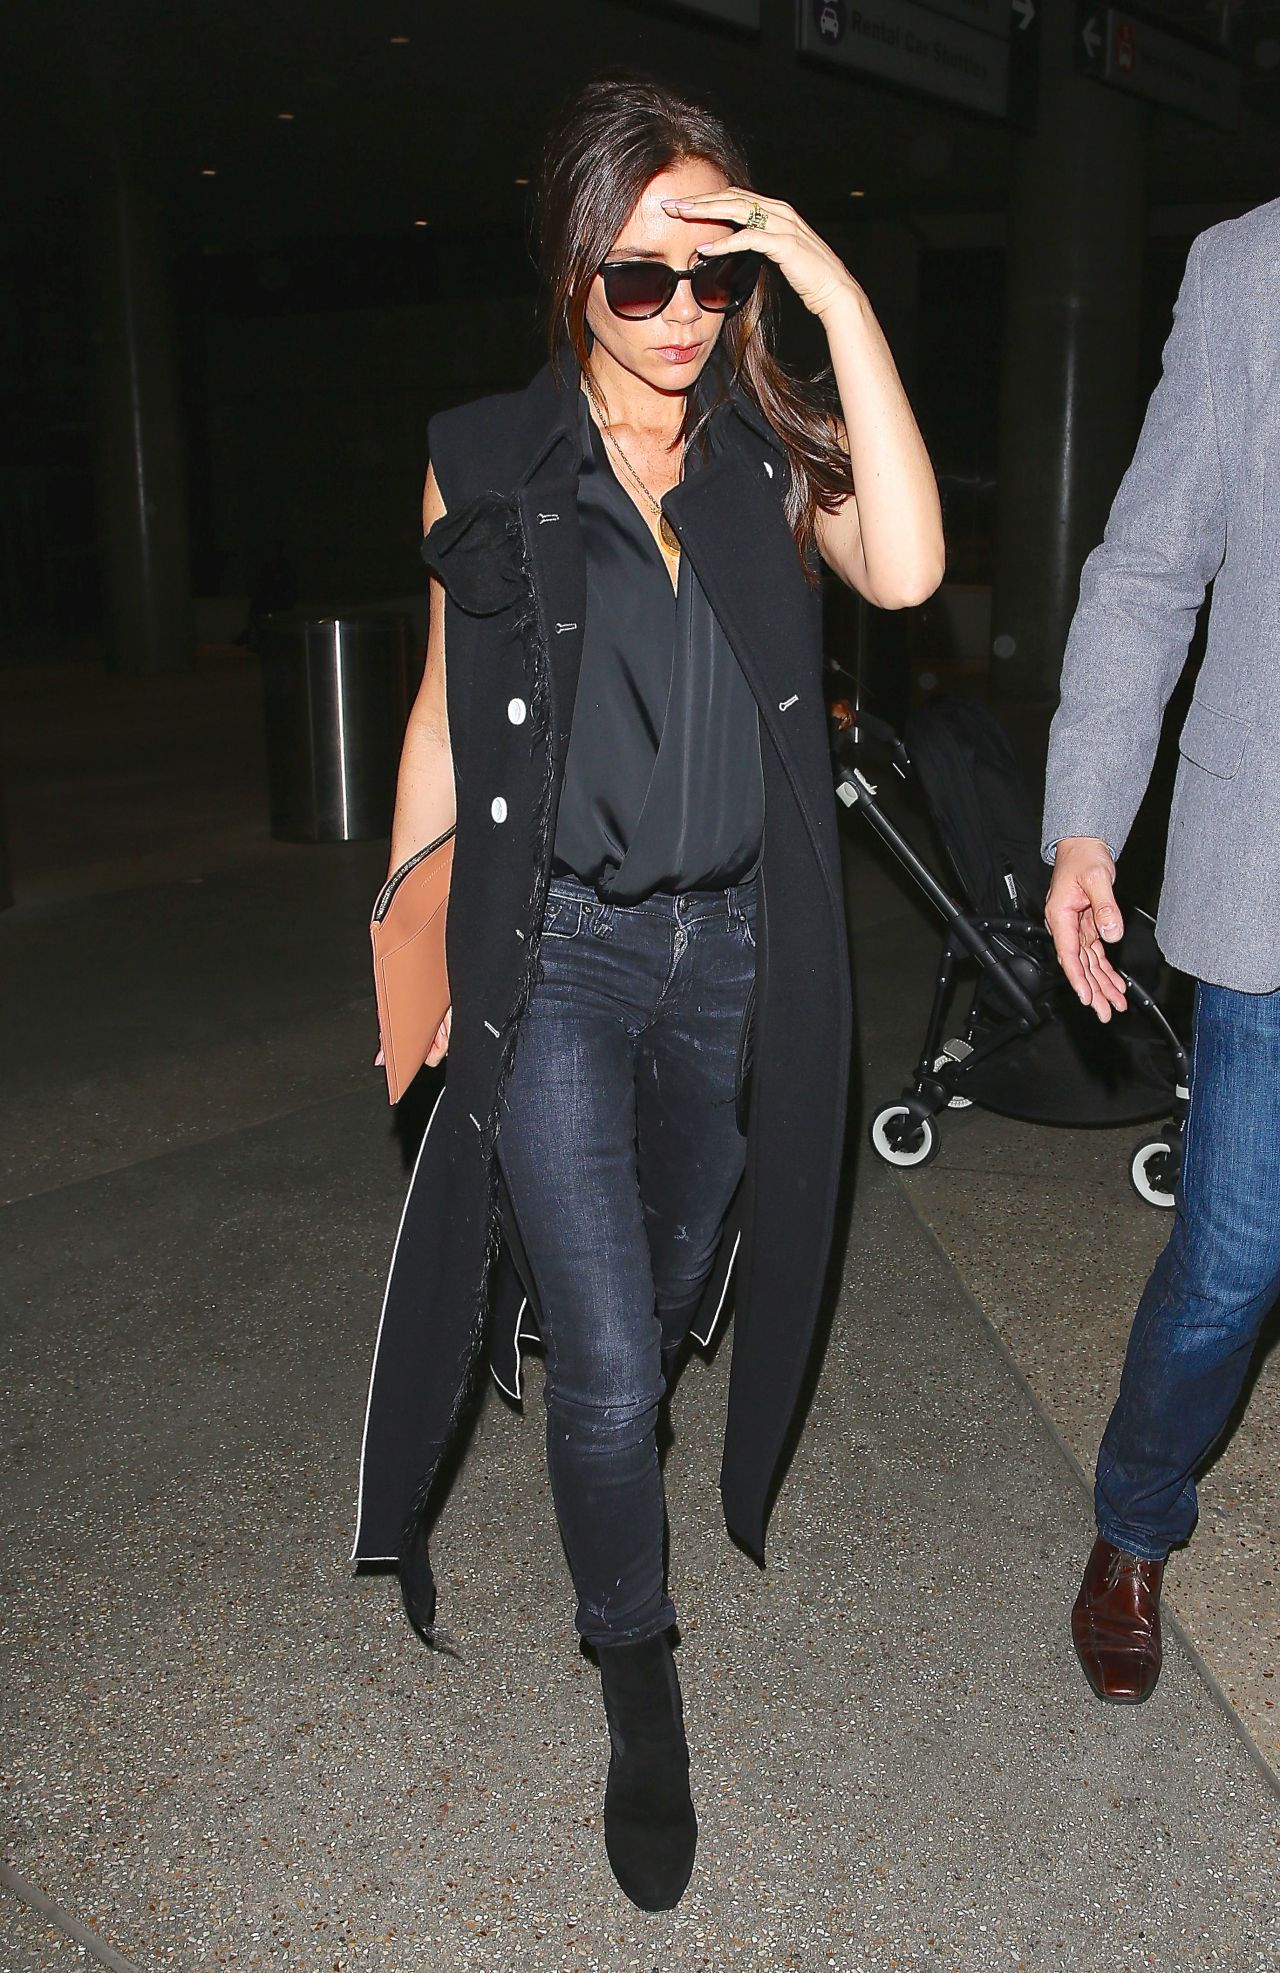 Victoria Beckham Casual Style At Lax Airport March 2015